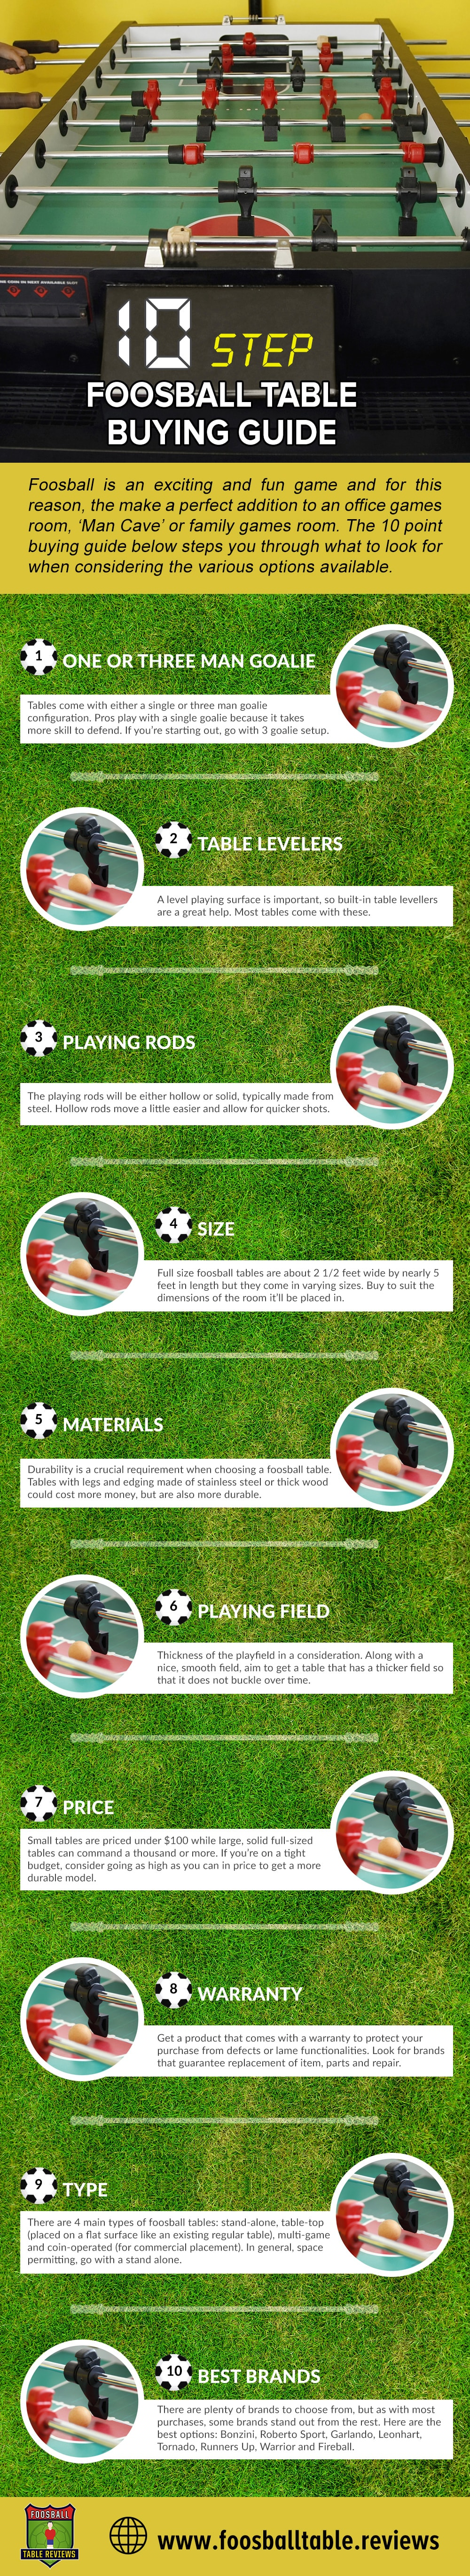 Foosball-table-buying-guide